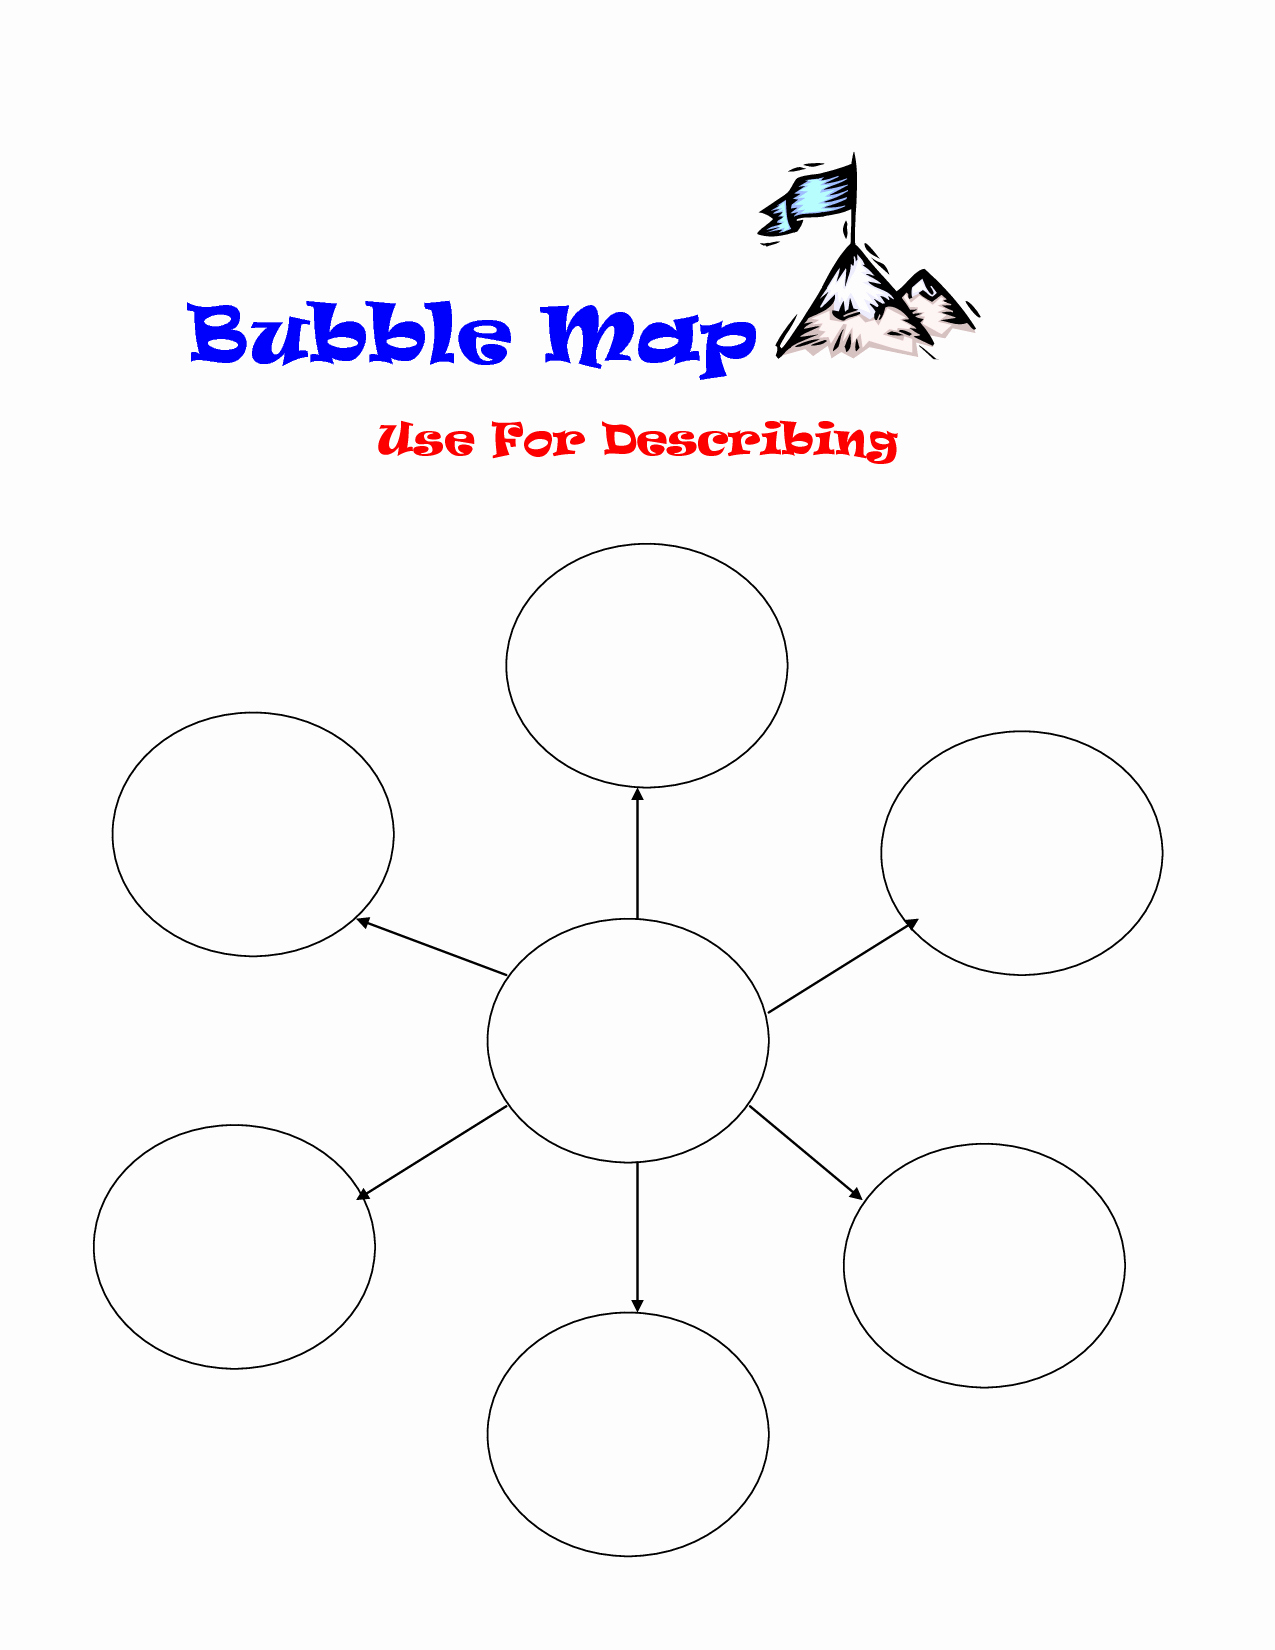 Bubble Map Template Word Lovely Bubble Map Template